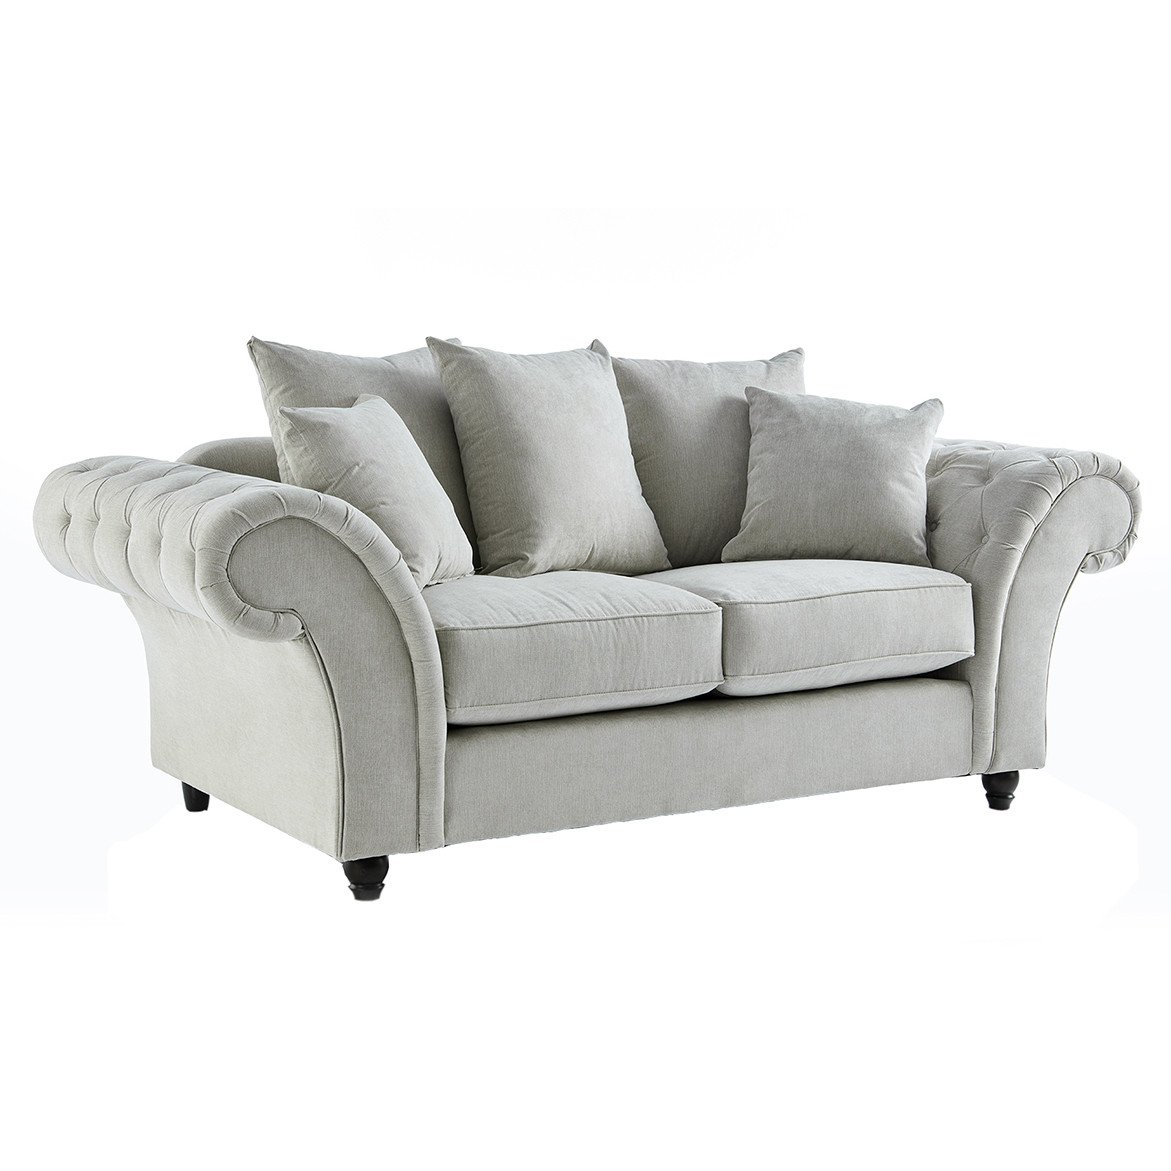 Dove Stone Oned Two Seater Sofa